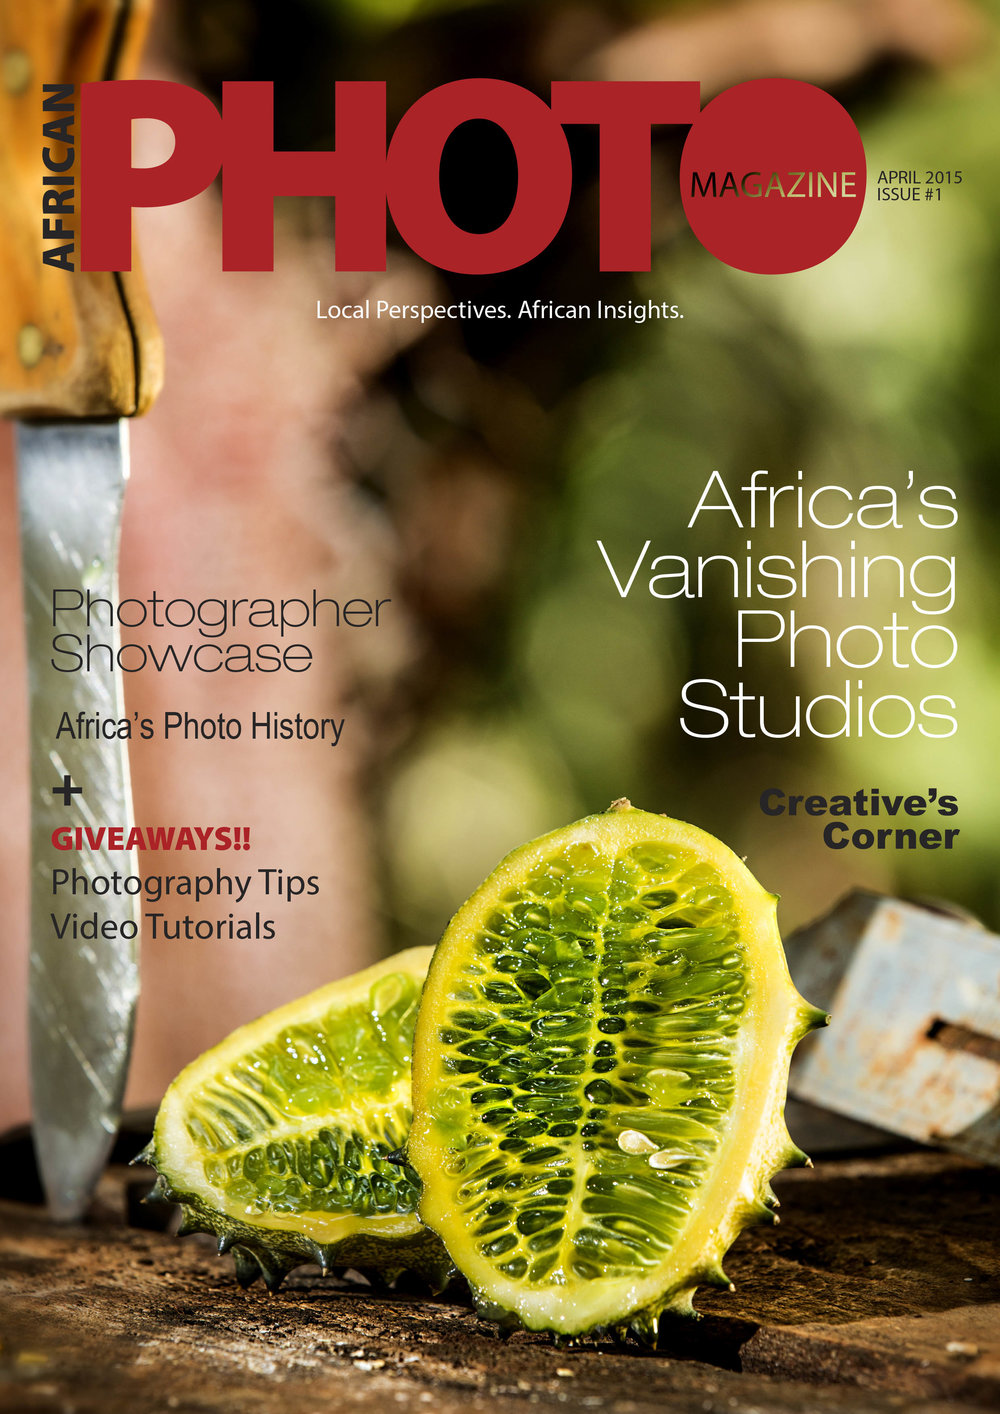 African Photo Magazine Issue#1